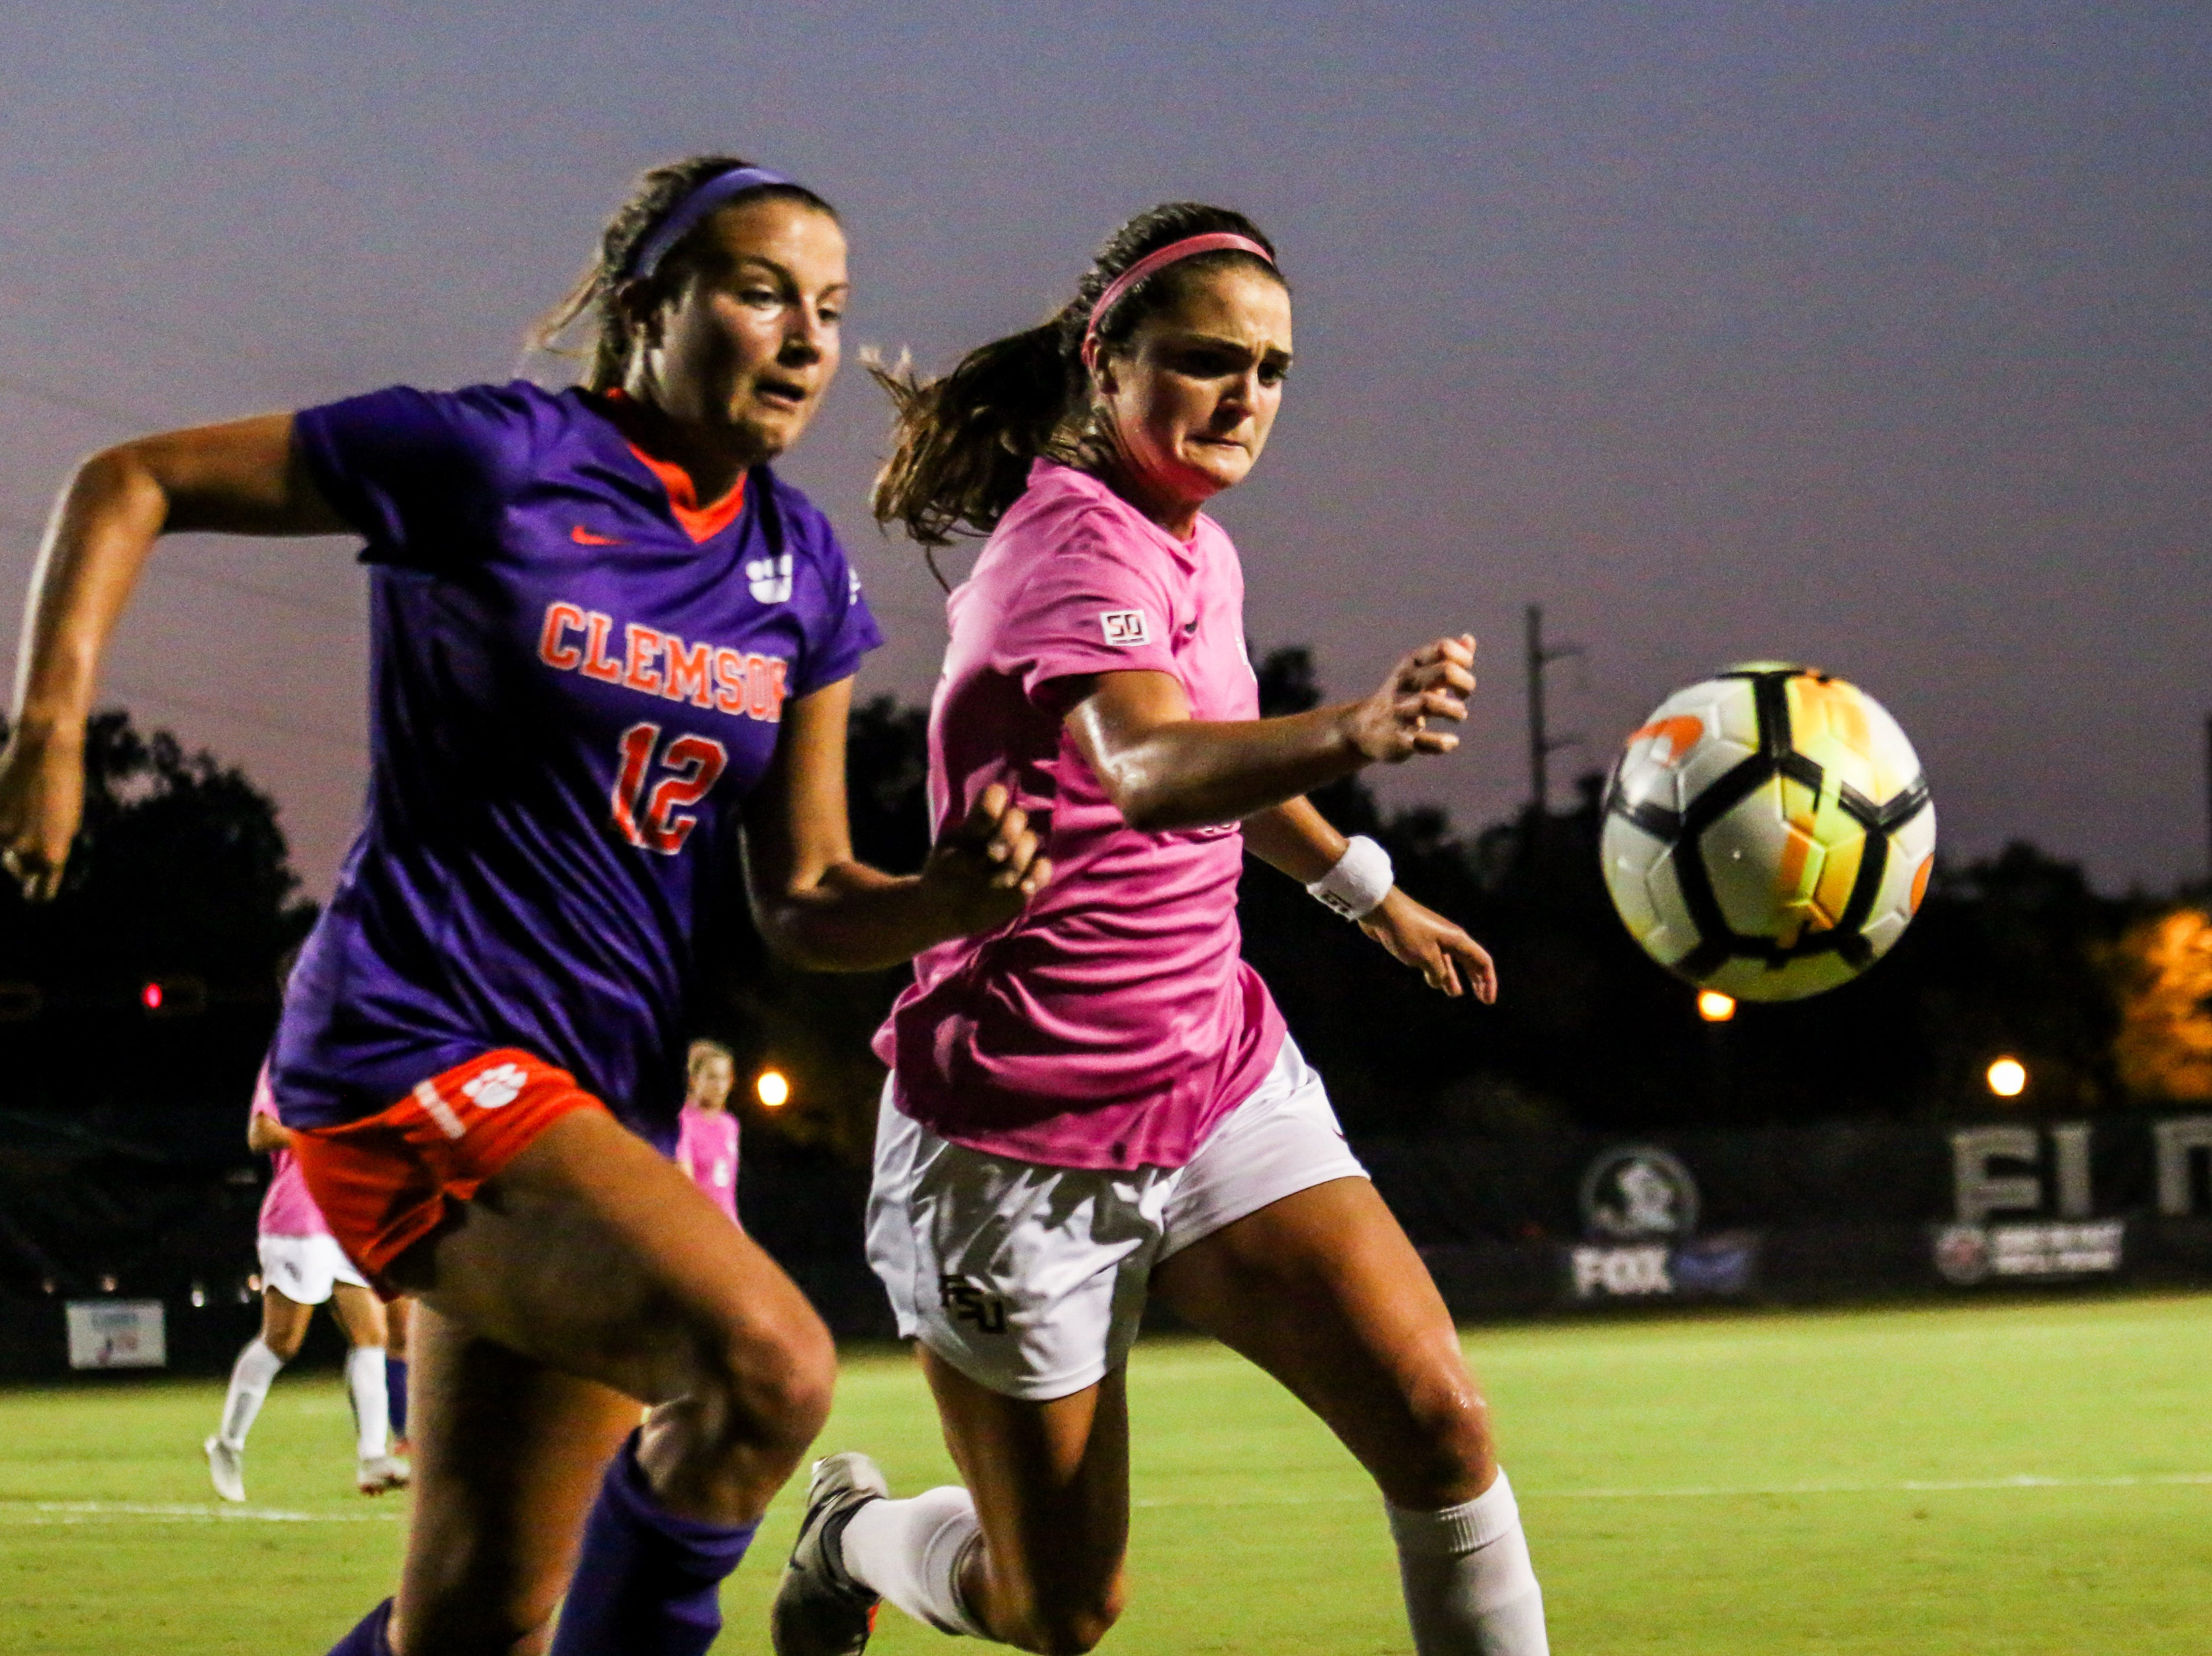 Olivia Bergau (15) fights off a Clemson defender for possession in the first half on Thursday, October 4th at the Seminole Soccer Complex.